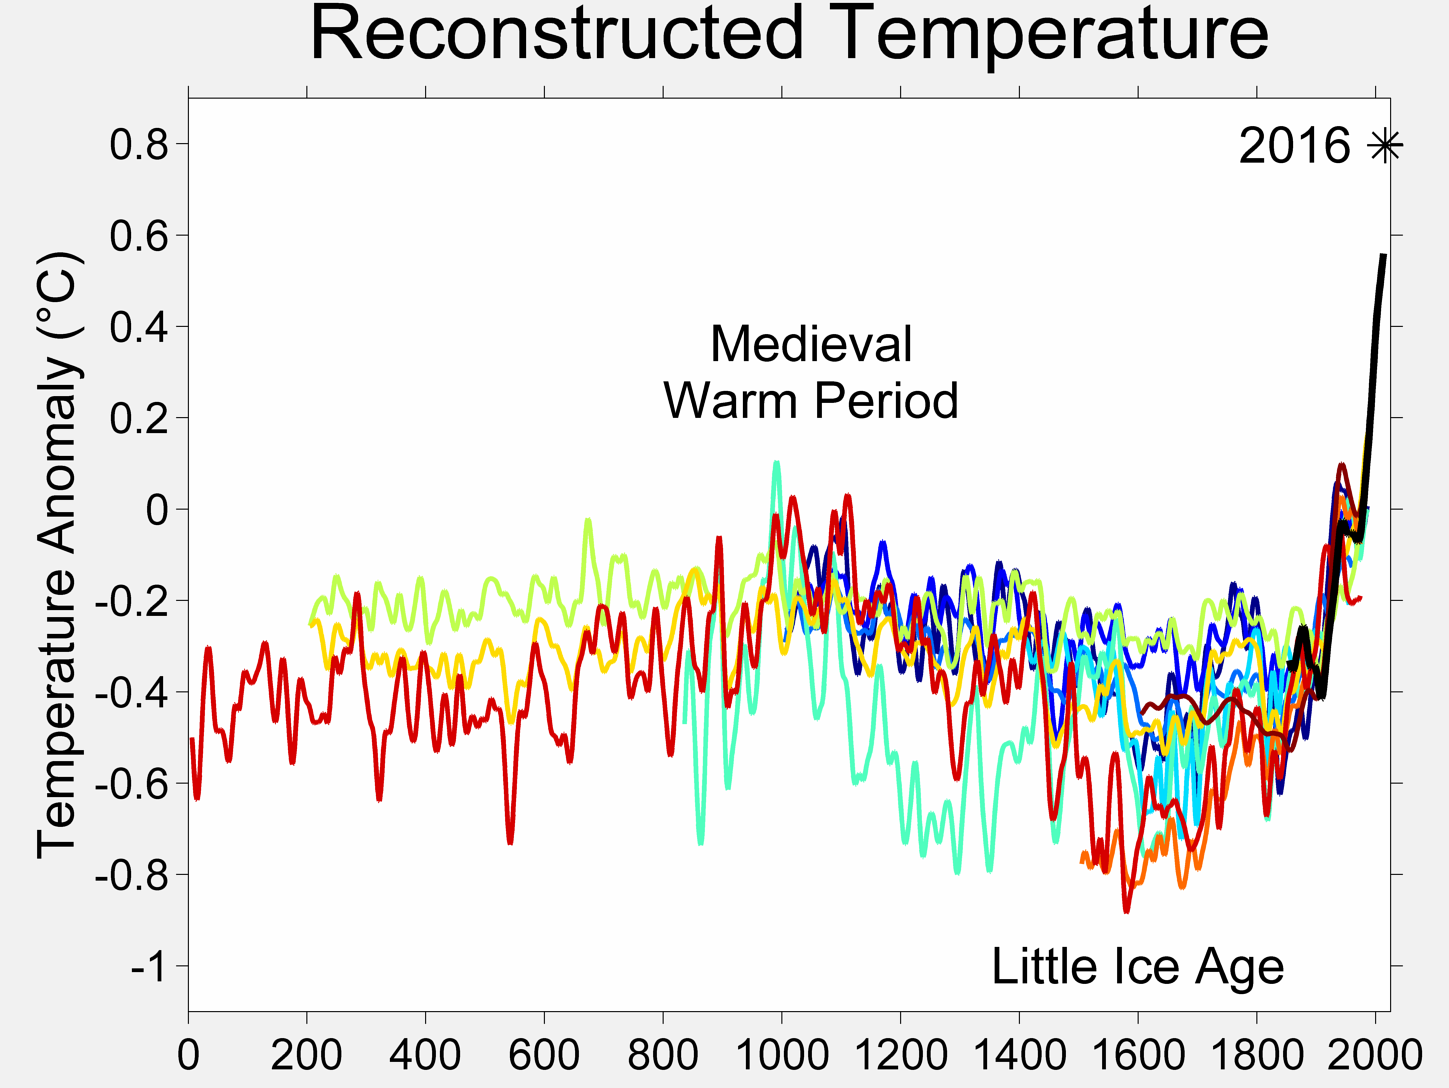 2000_Year_Temperature_Comparison.png